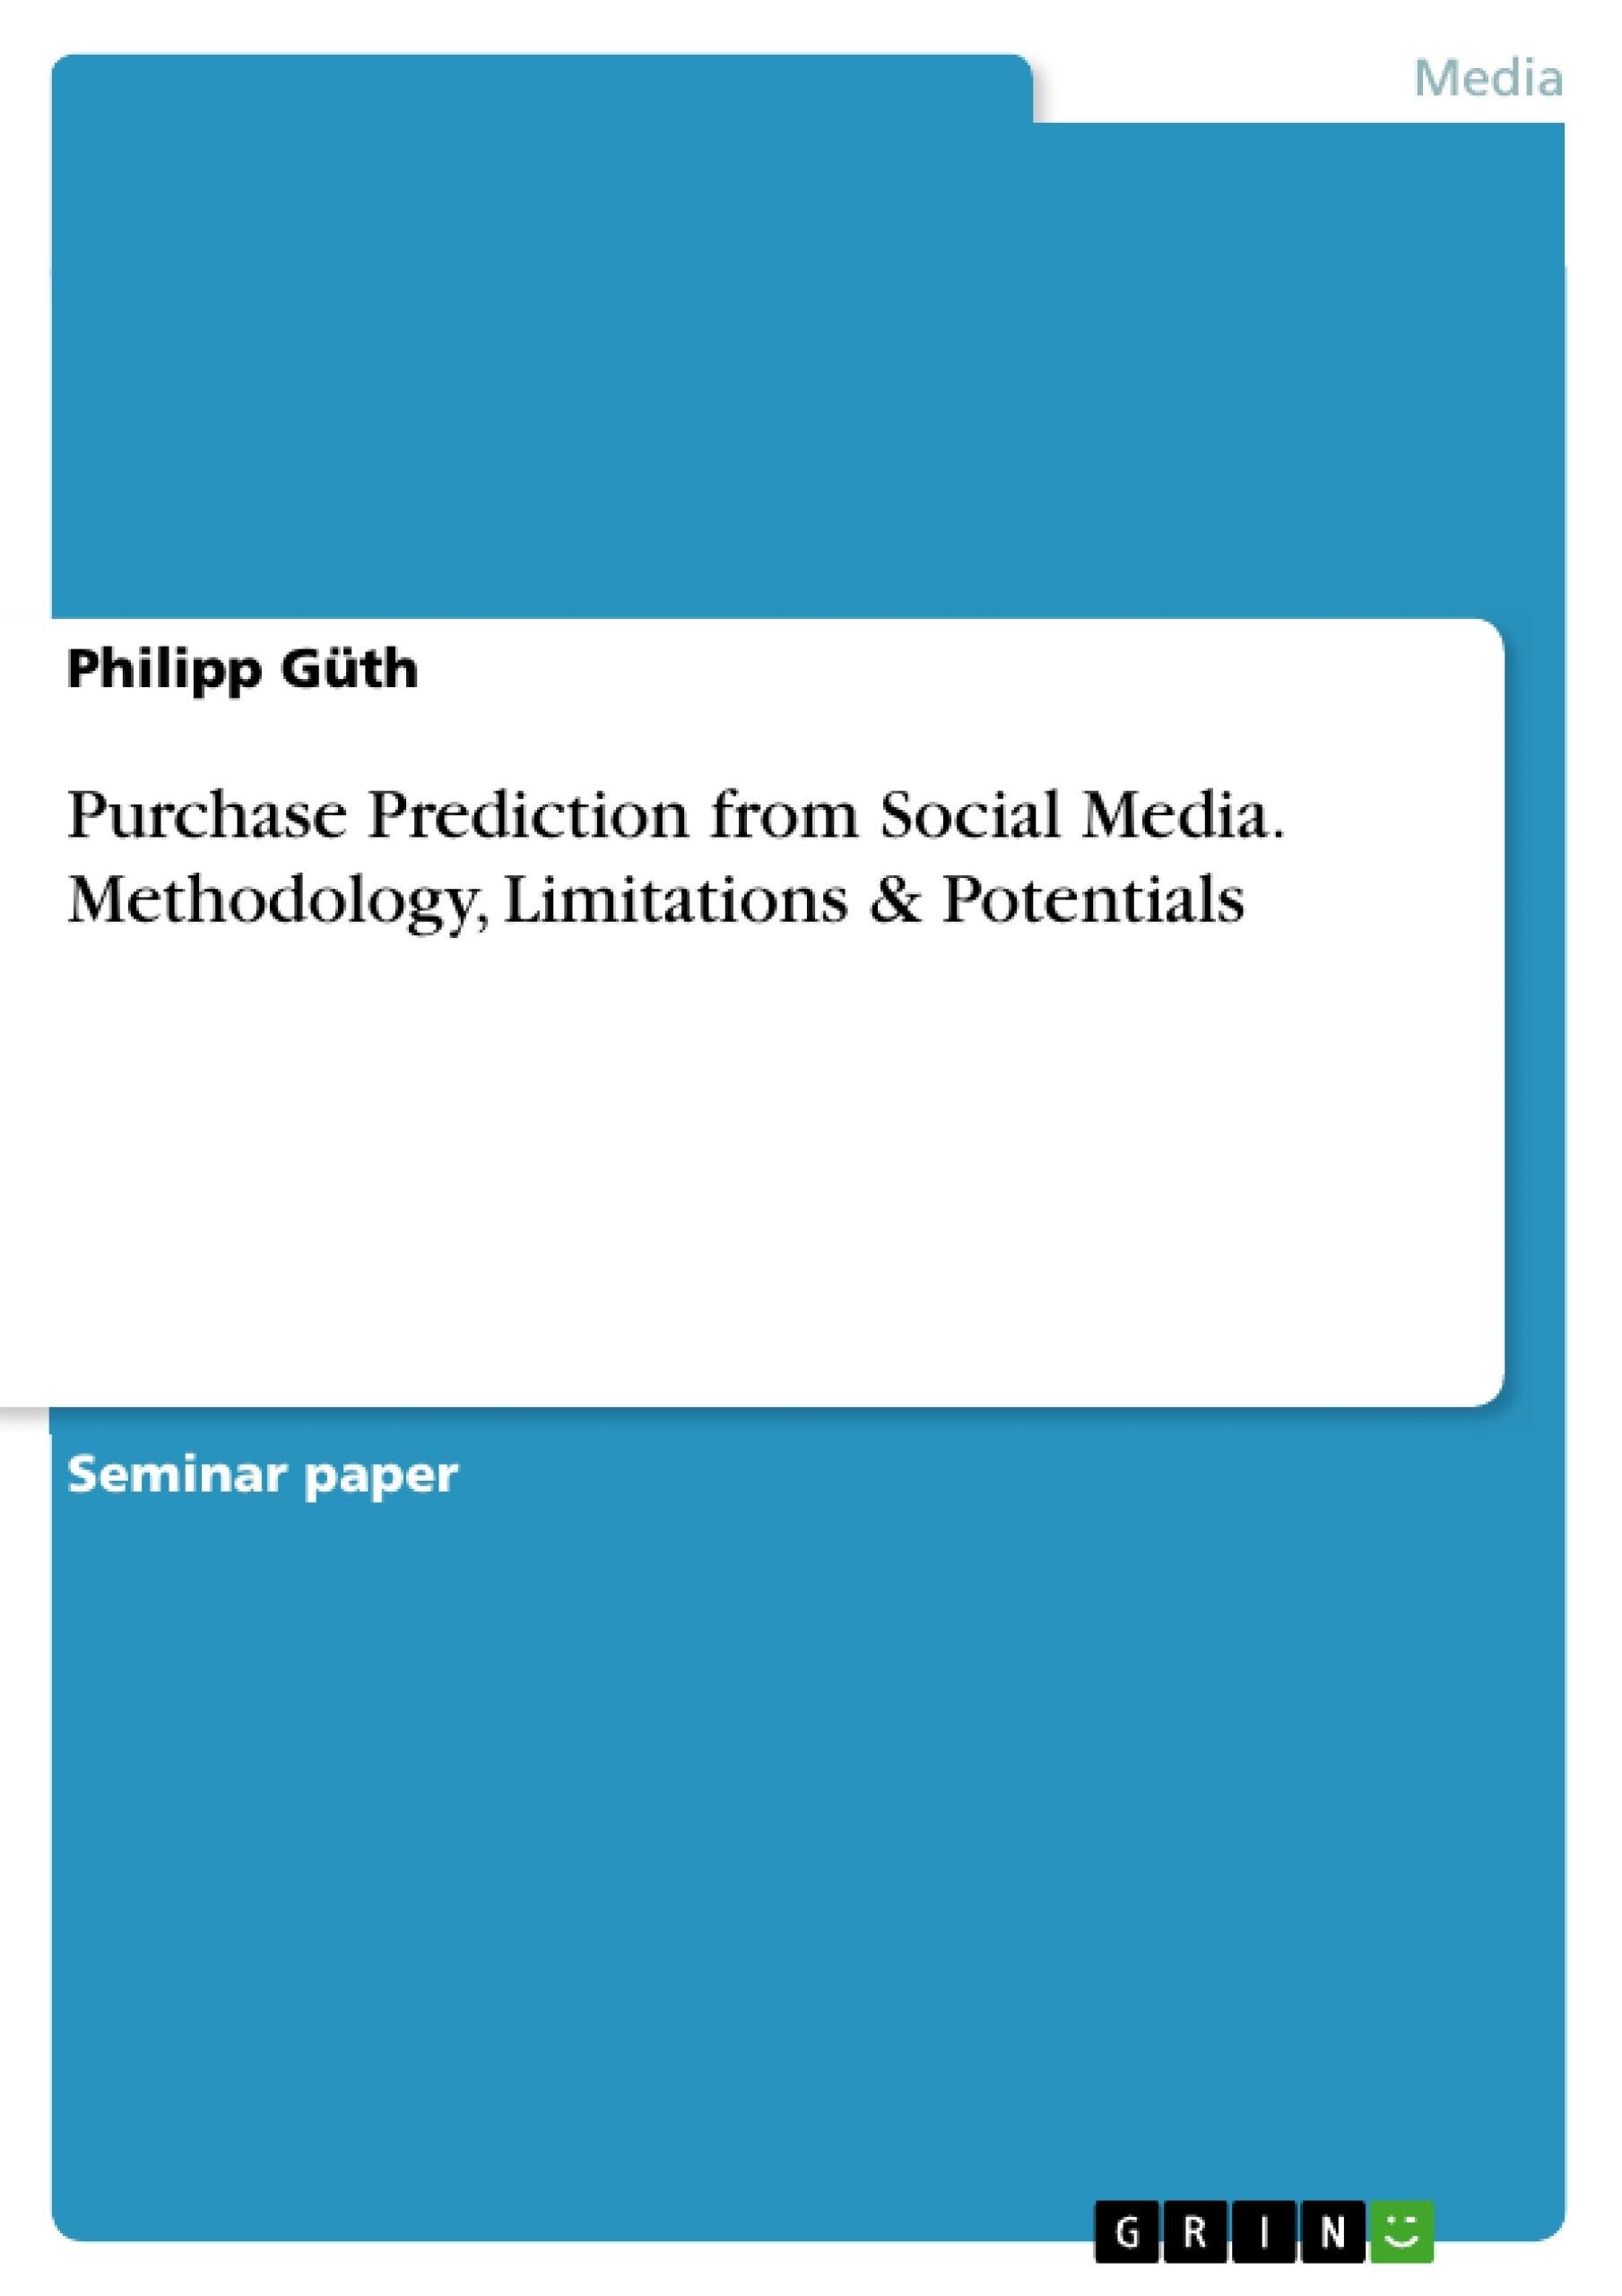 thesis paper on social media - what are the pros and cons with using social media in general as well as in the school area social media essay, 112012 communication is an essential.